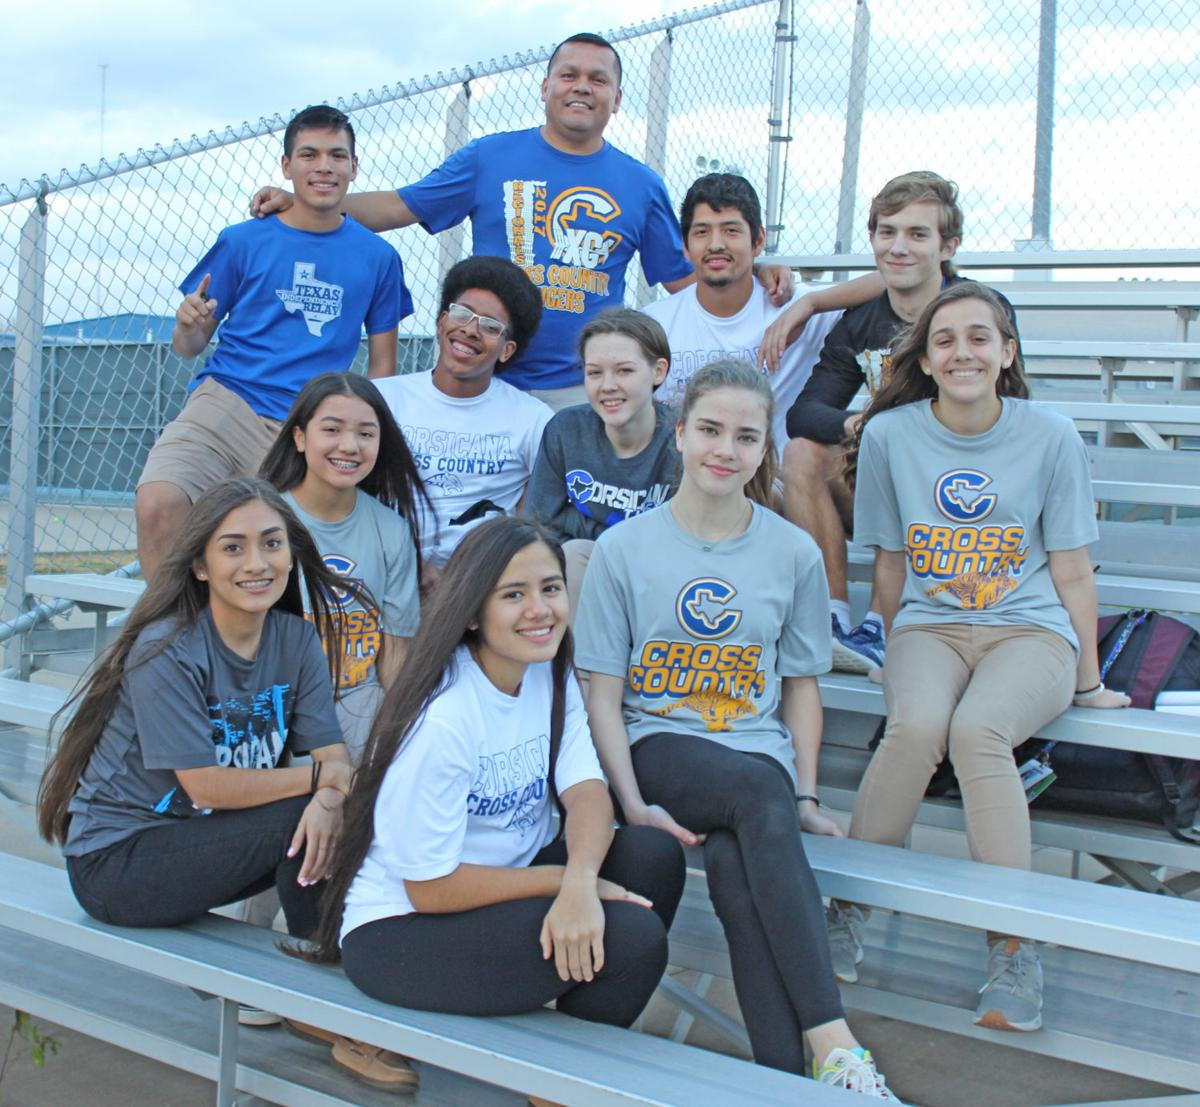 Tigers cross country team